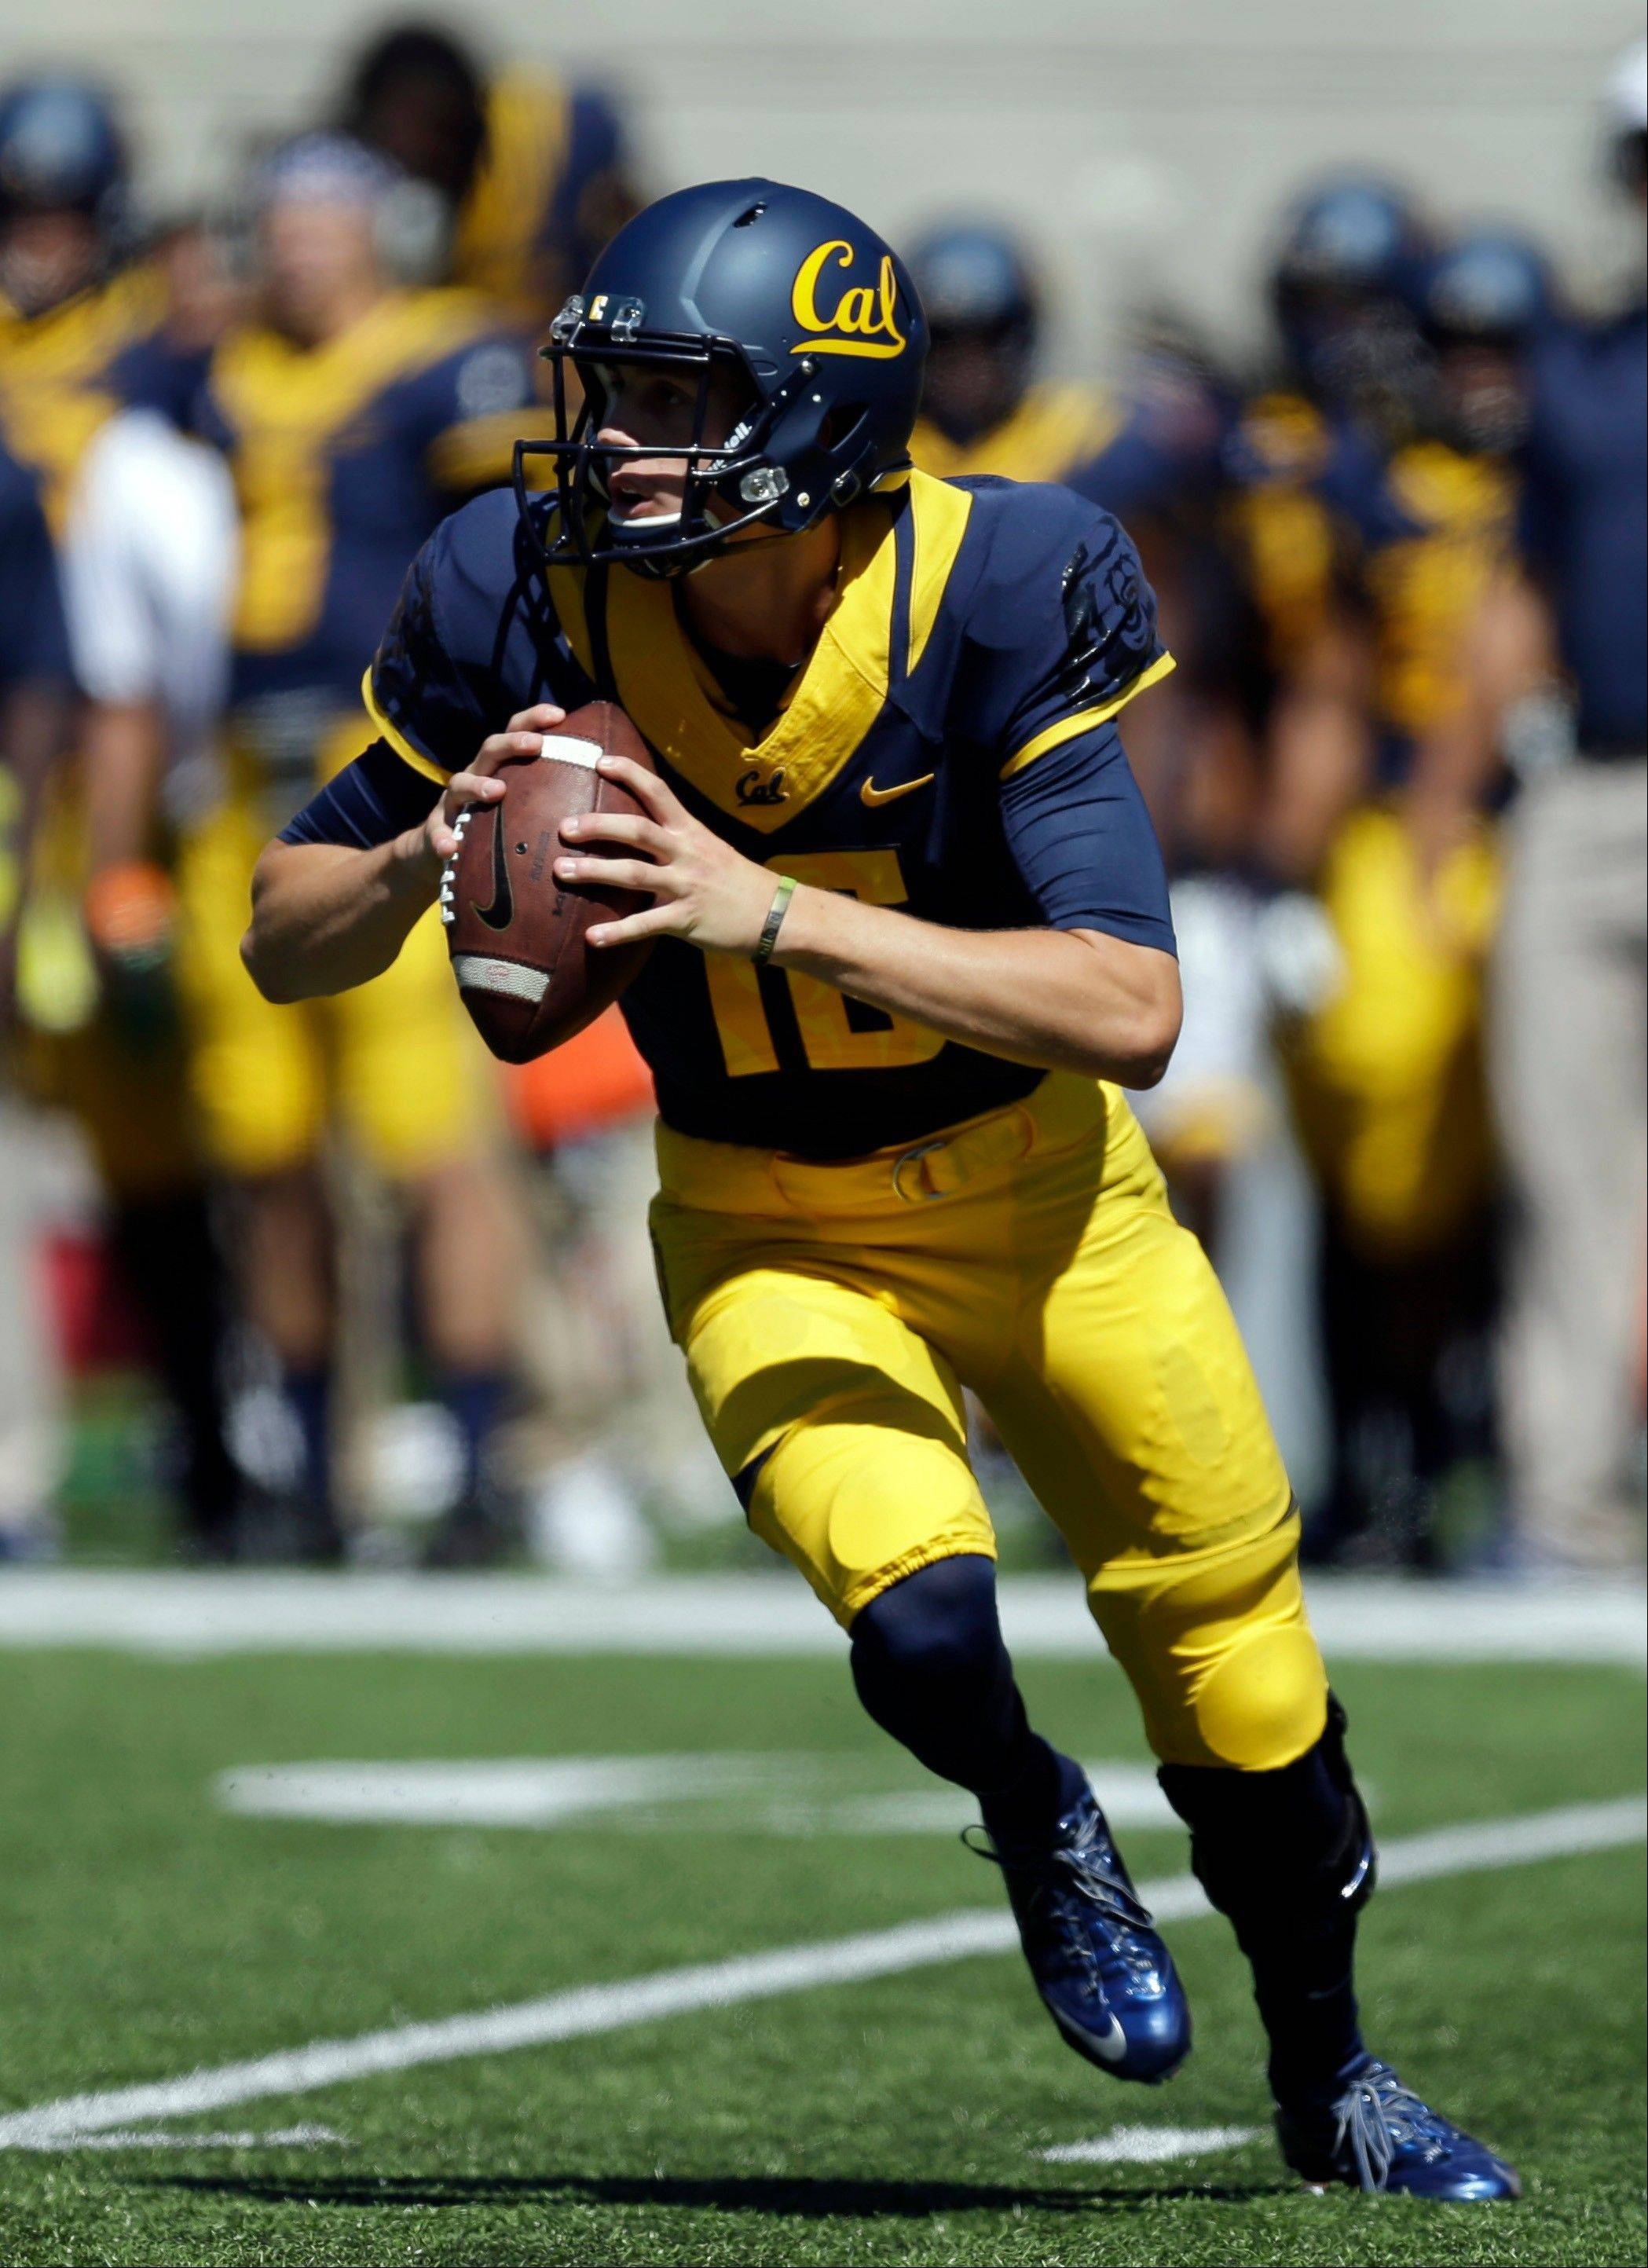 Cal quarterback Jared Goff has gotten off to a terrific start in his first season and is leading the nation with 930 yards passing in two games.